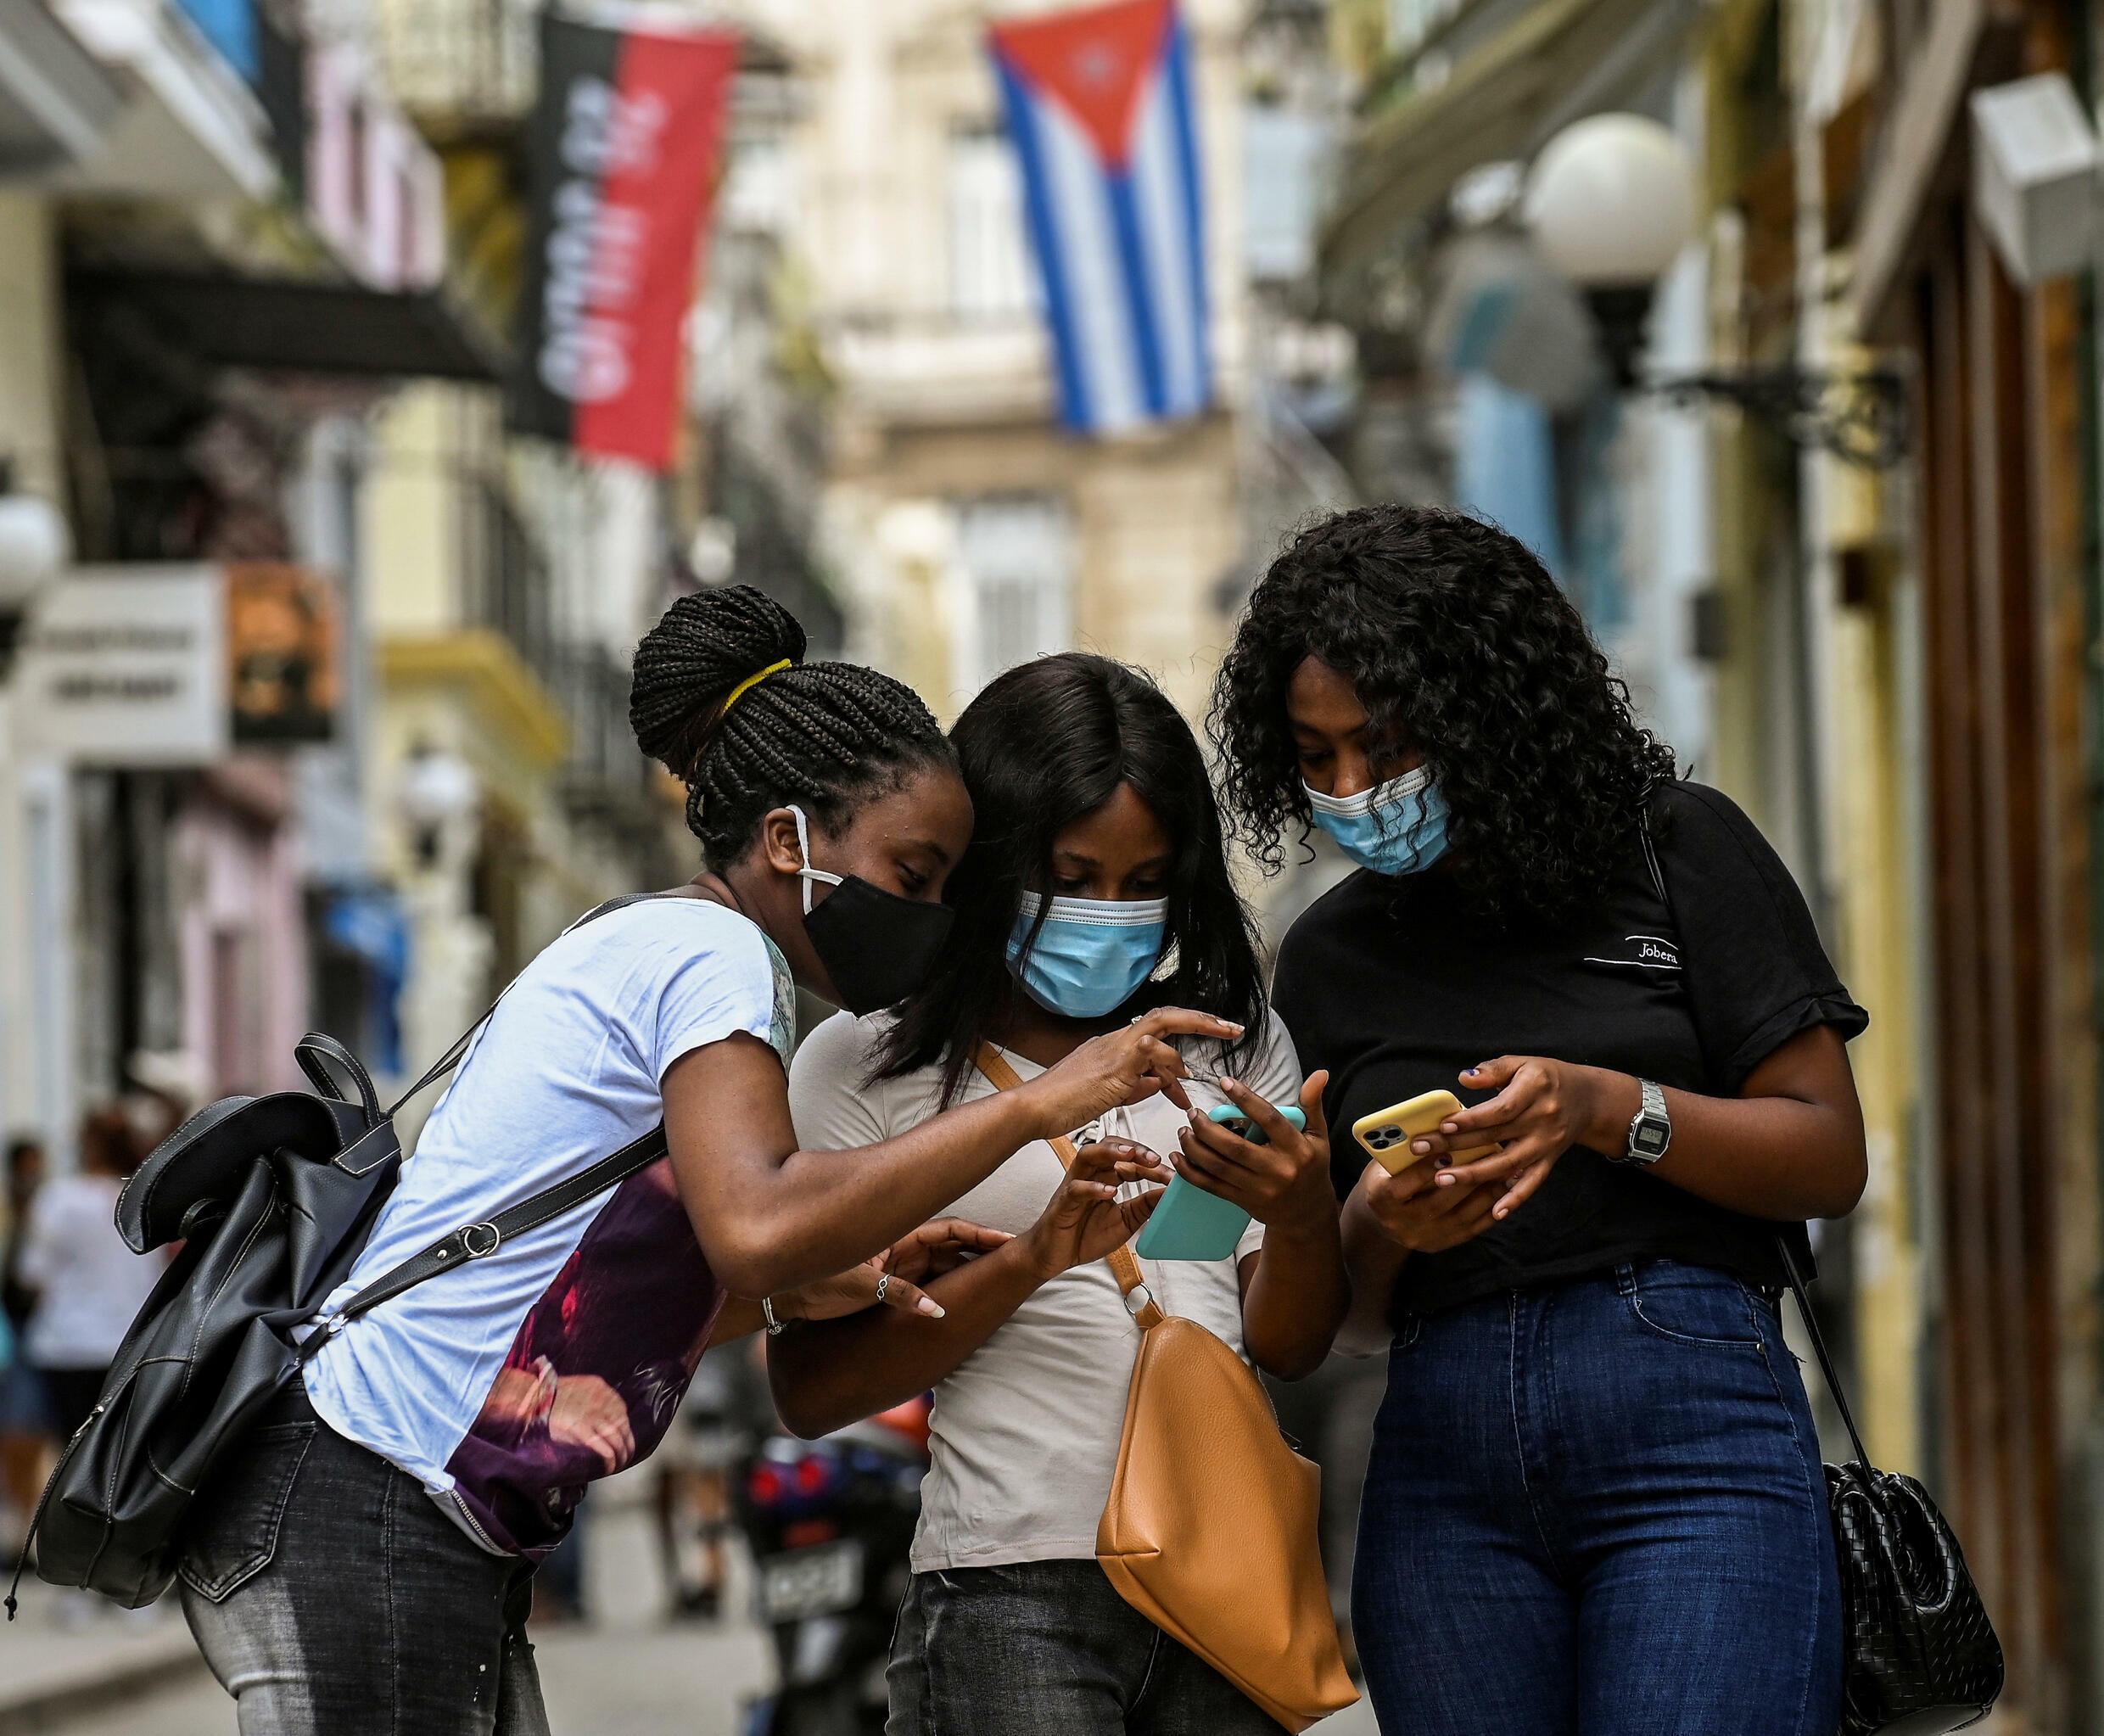 Cuban authorities restored internet access on Wednesday following three days of interruptions but access to social media and messaging apps such as Facebook, WhatsApp and Twitter remained blocked